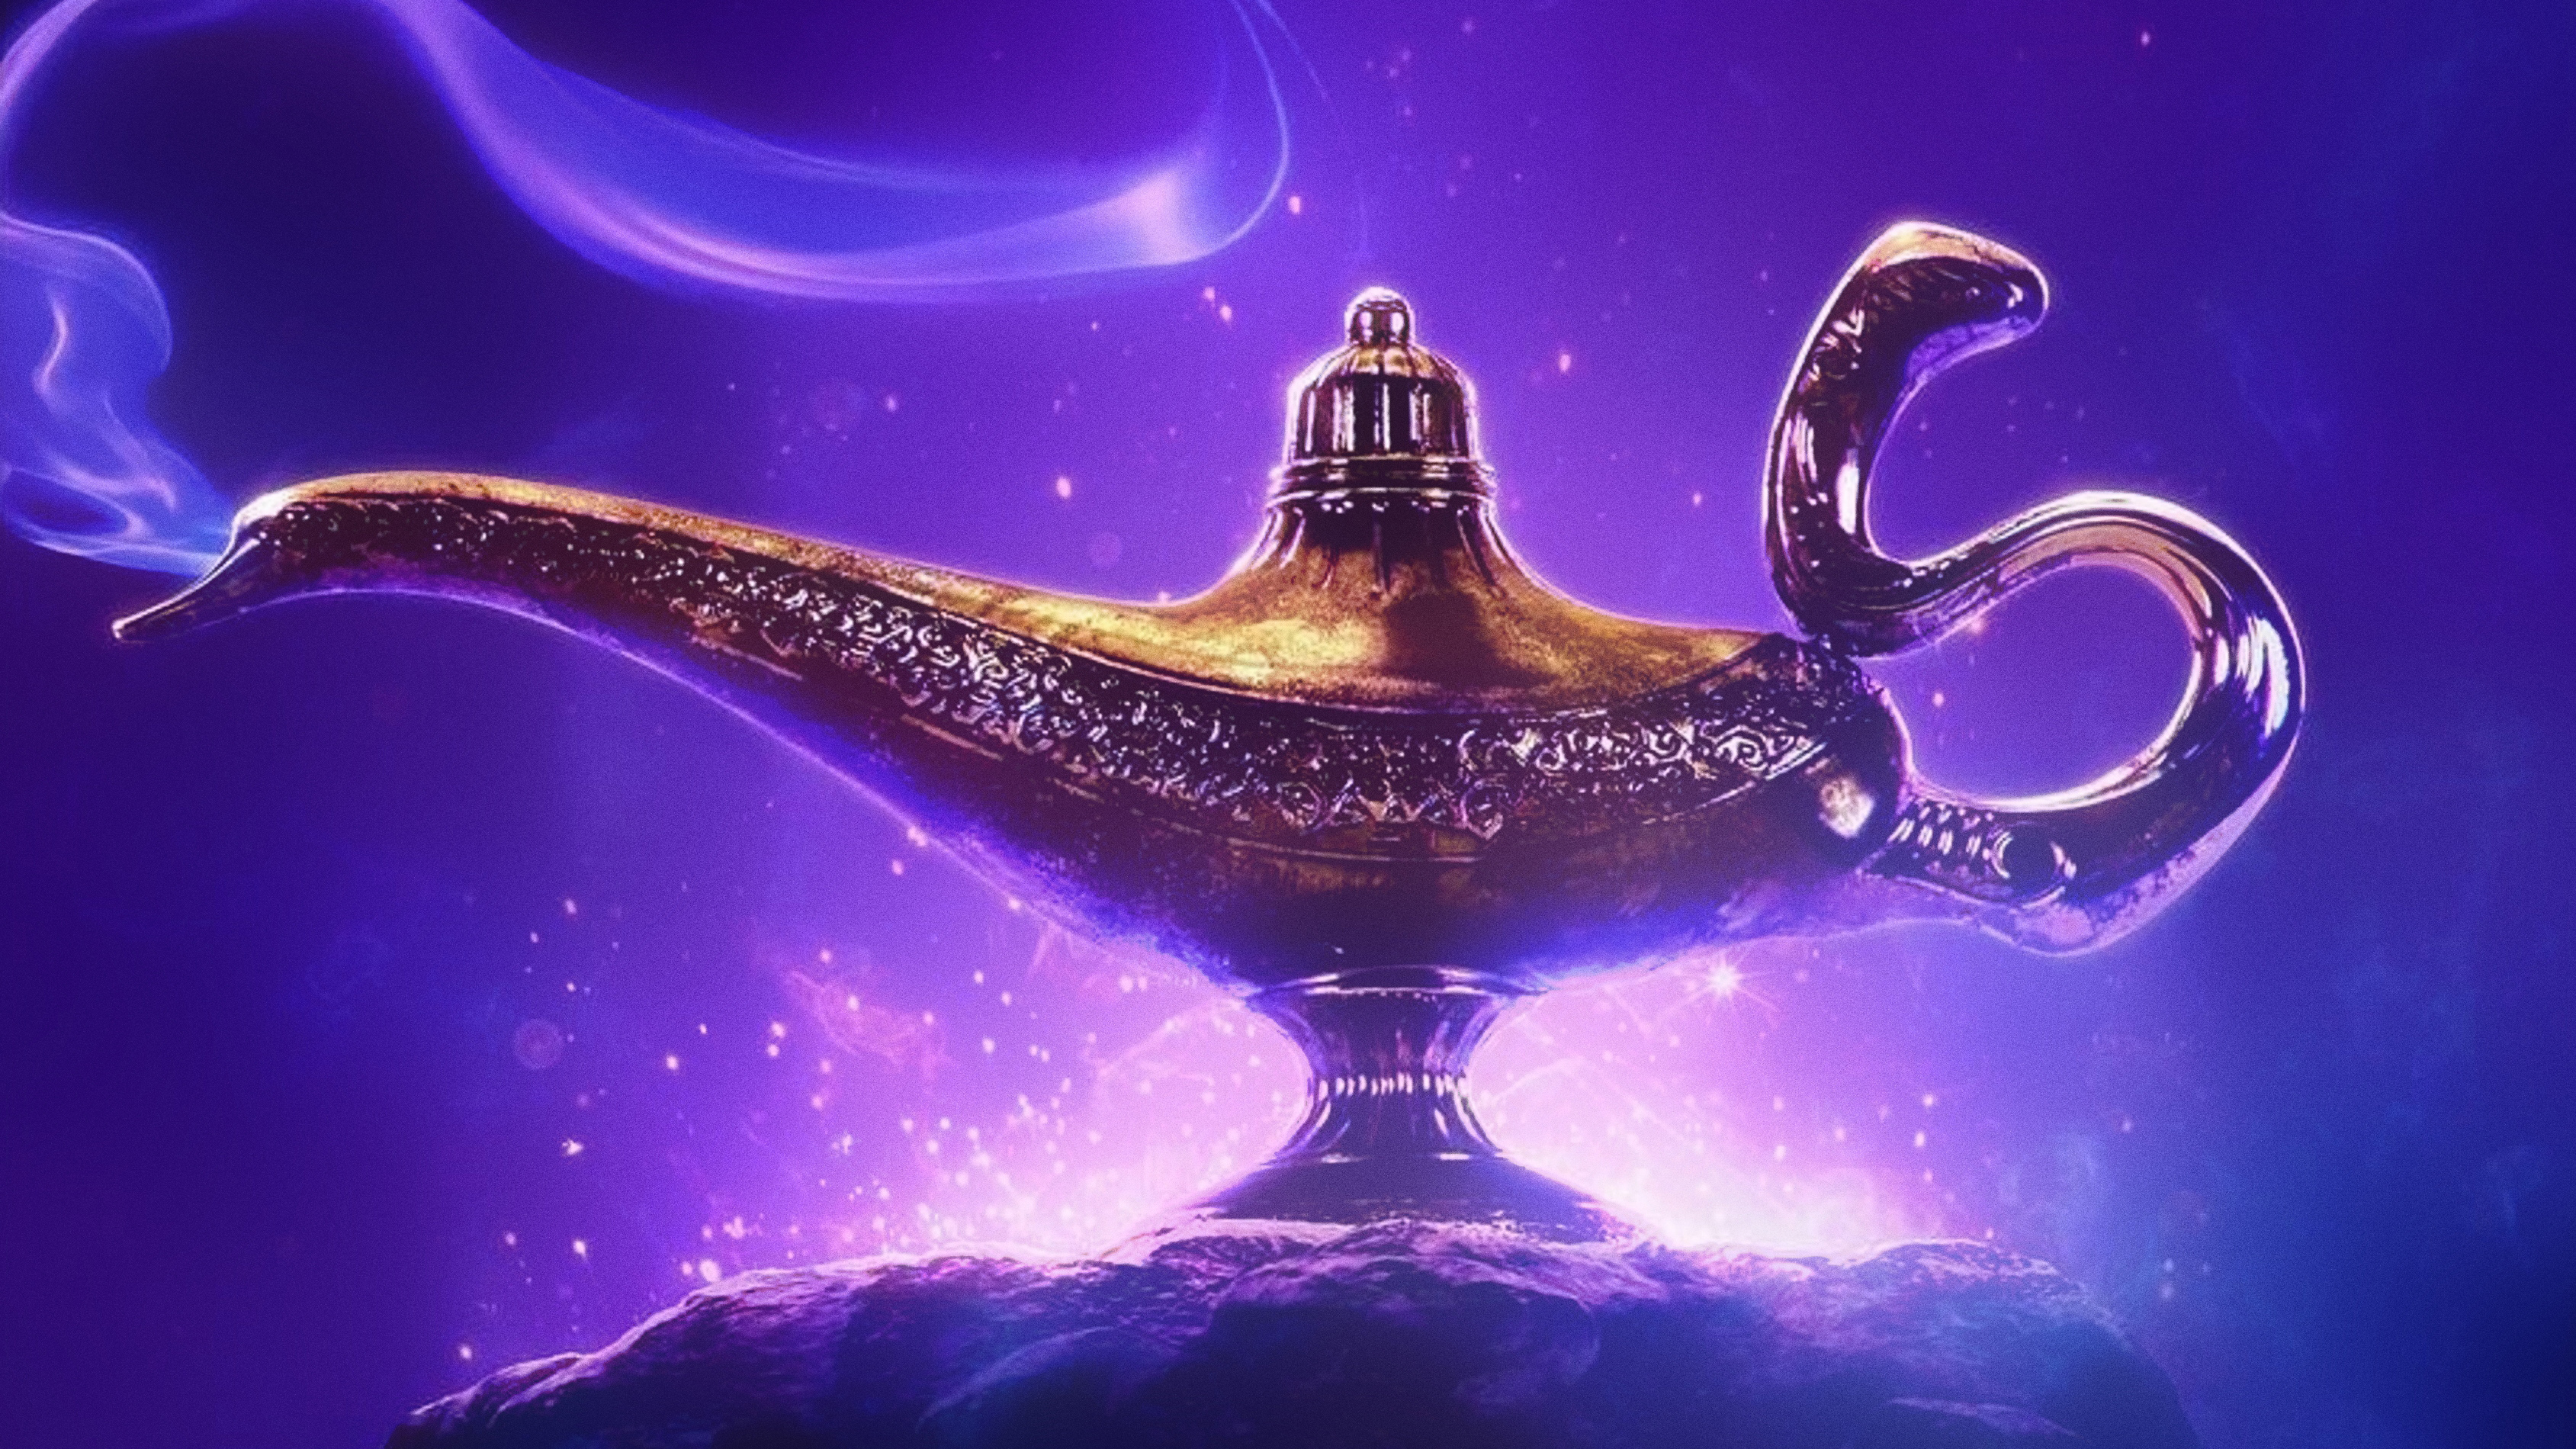 Disney Aladdin 2019 Wallpapers HD Wallpapers 3378x1900